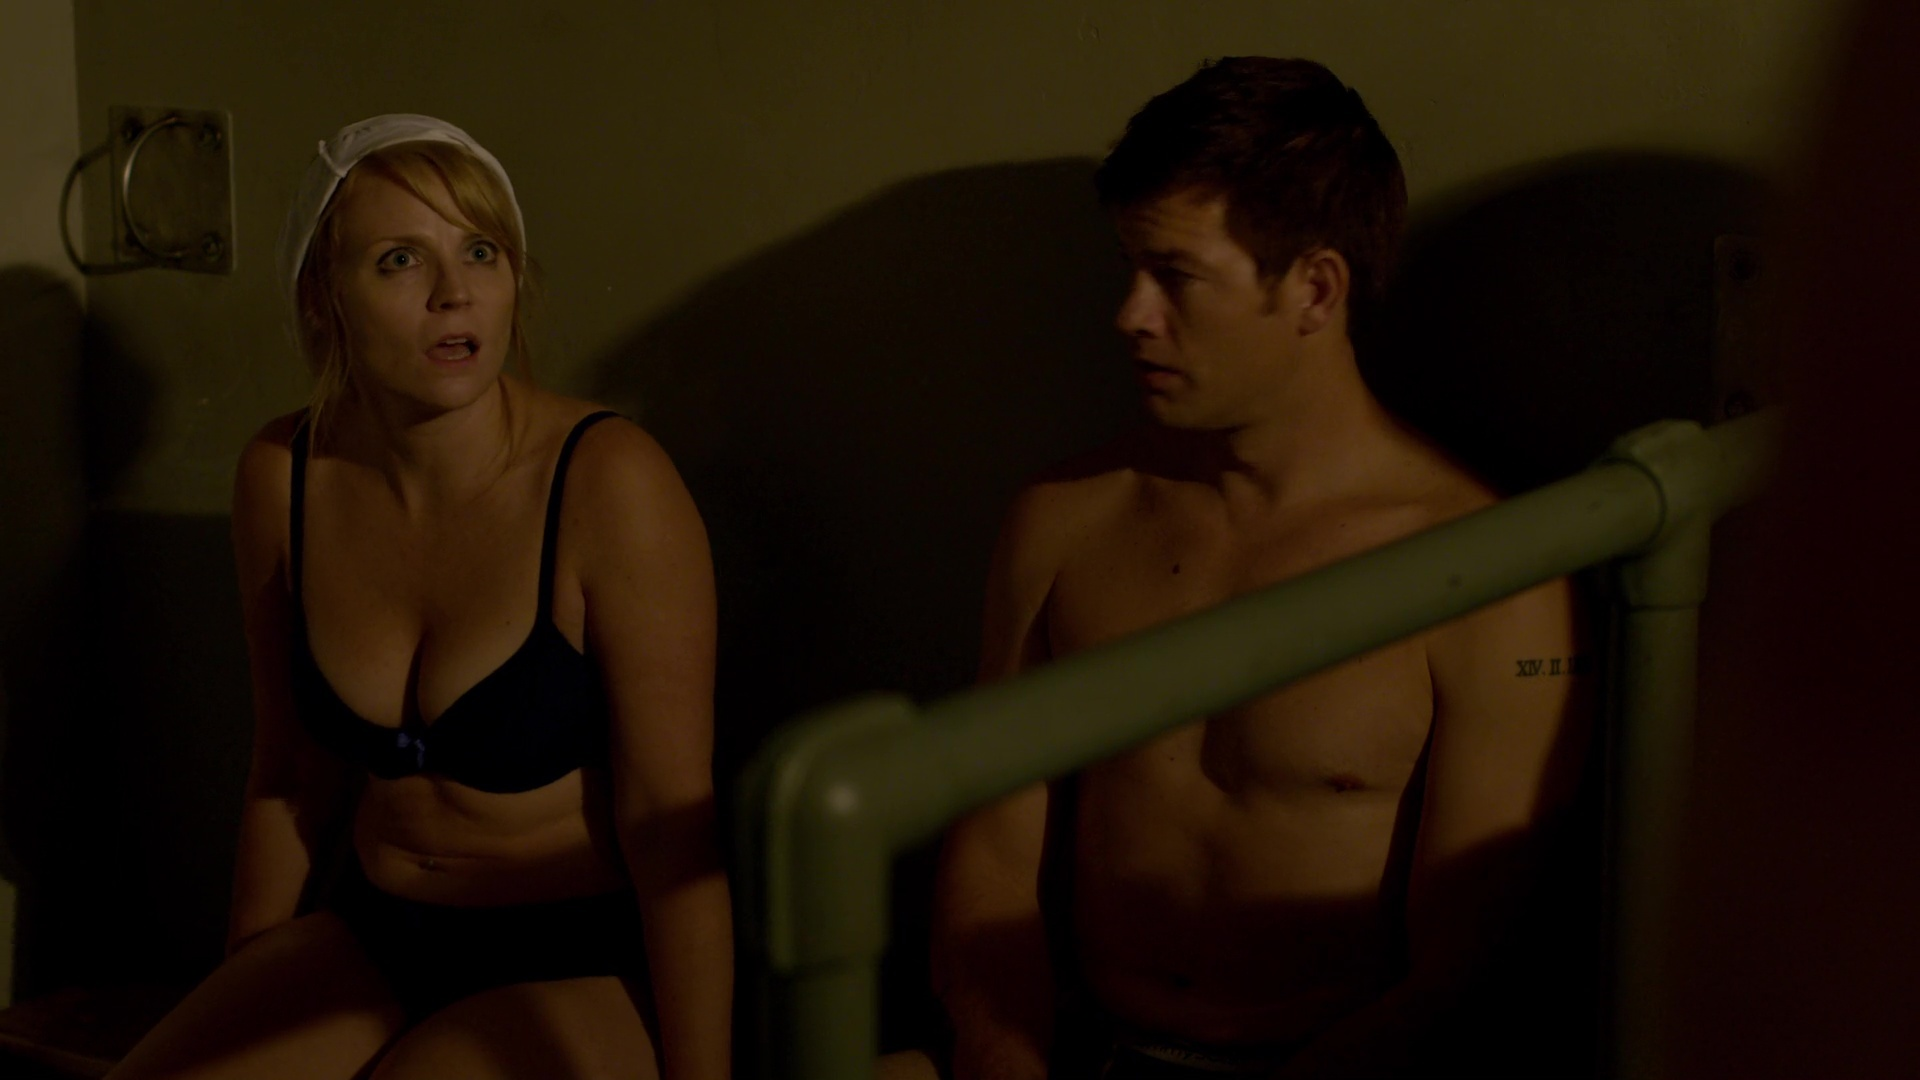 Drew tarver, andrew ridings gay, shirtless scene in the other two